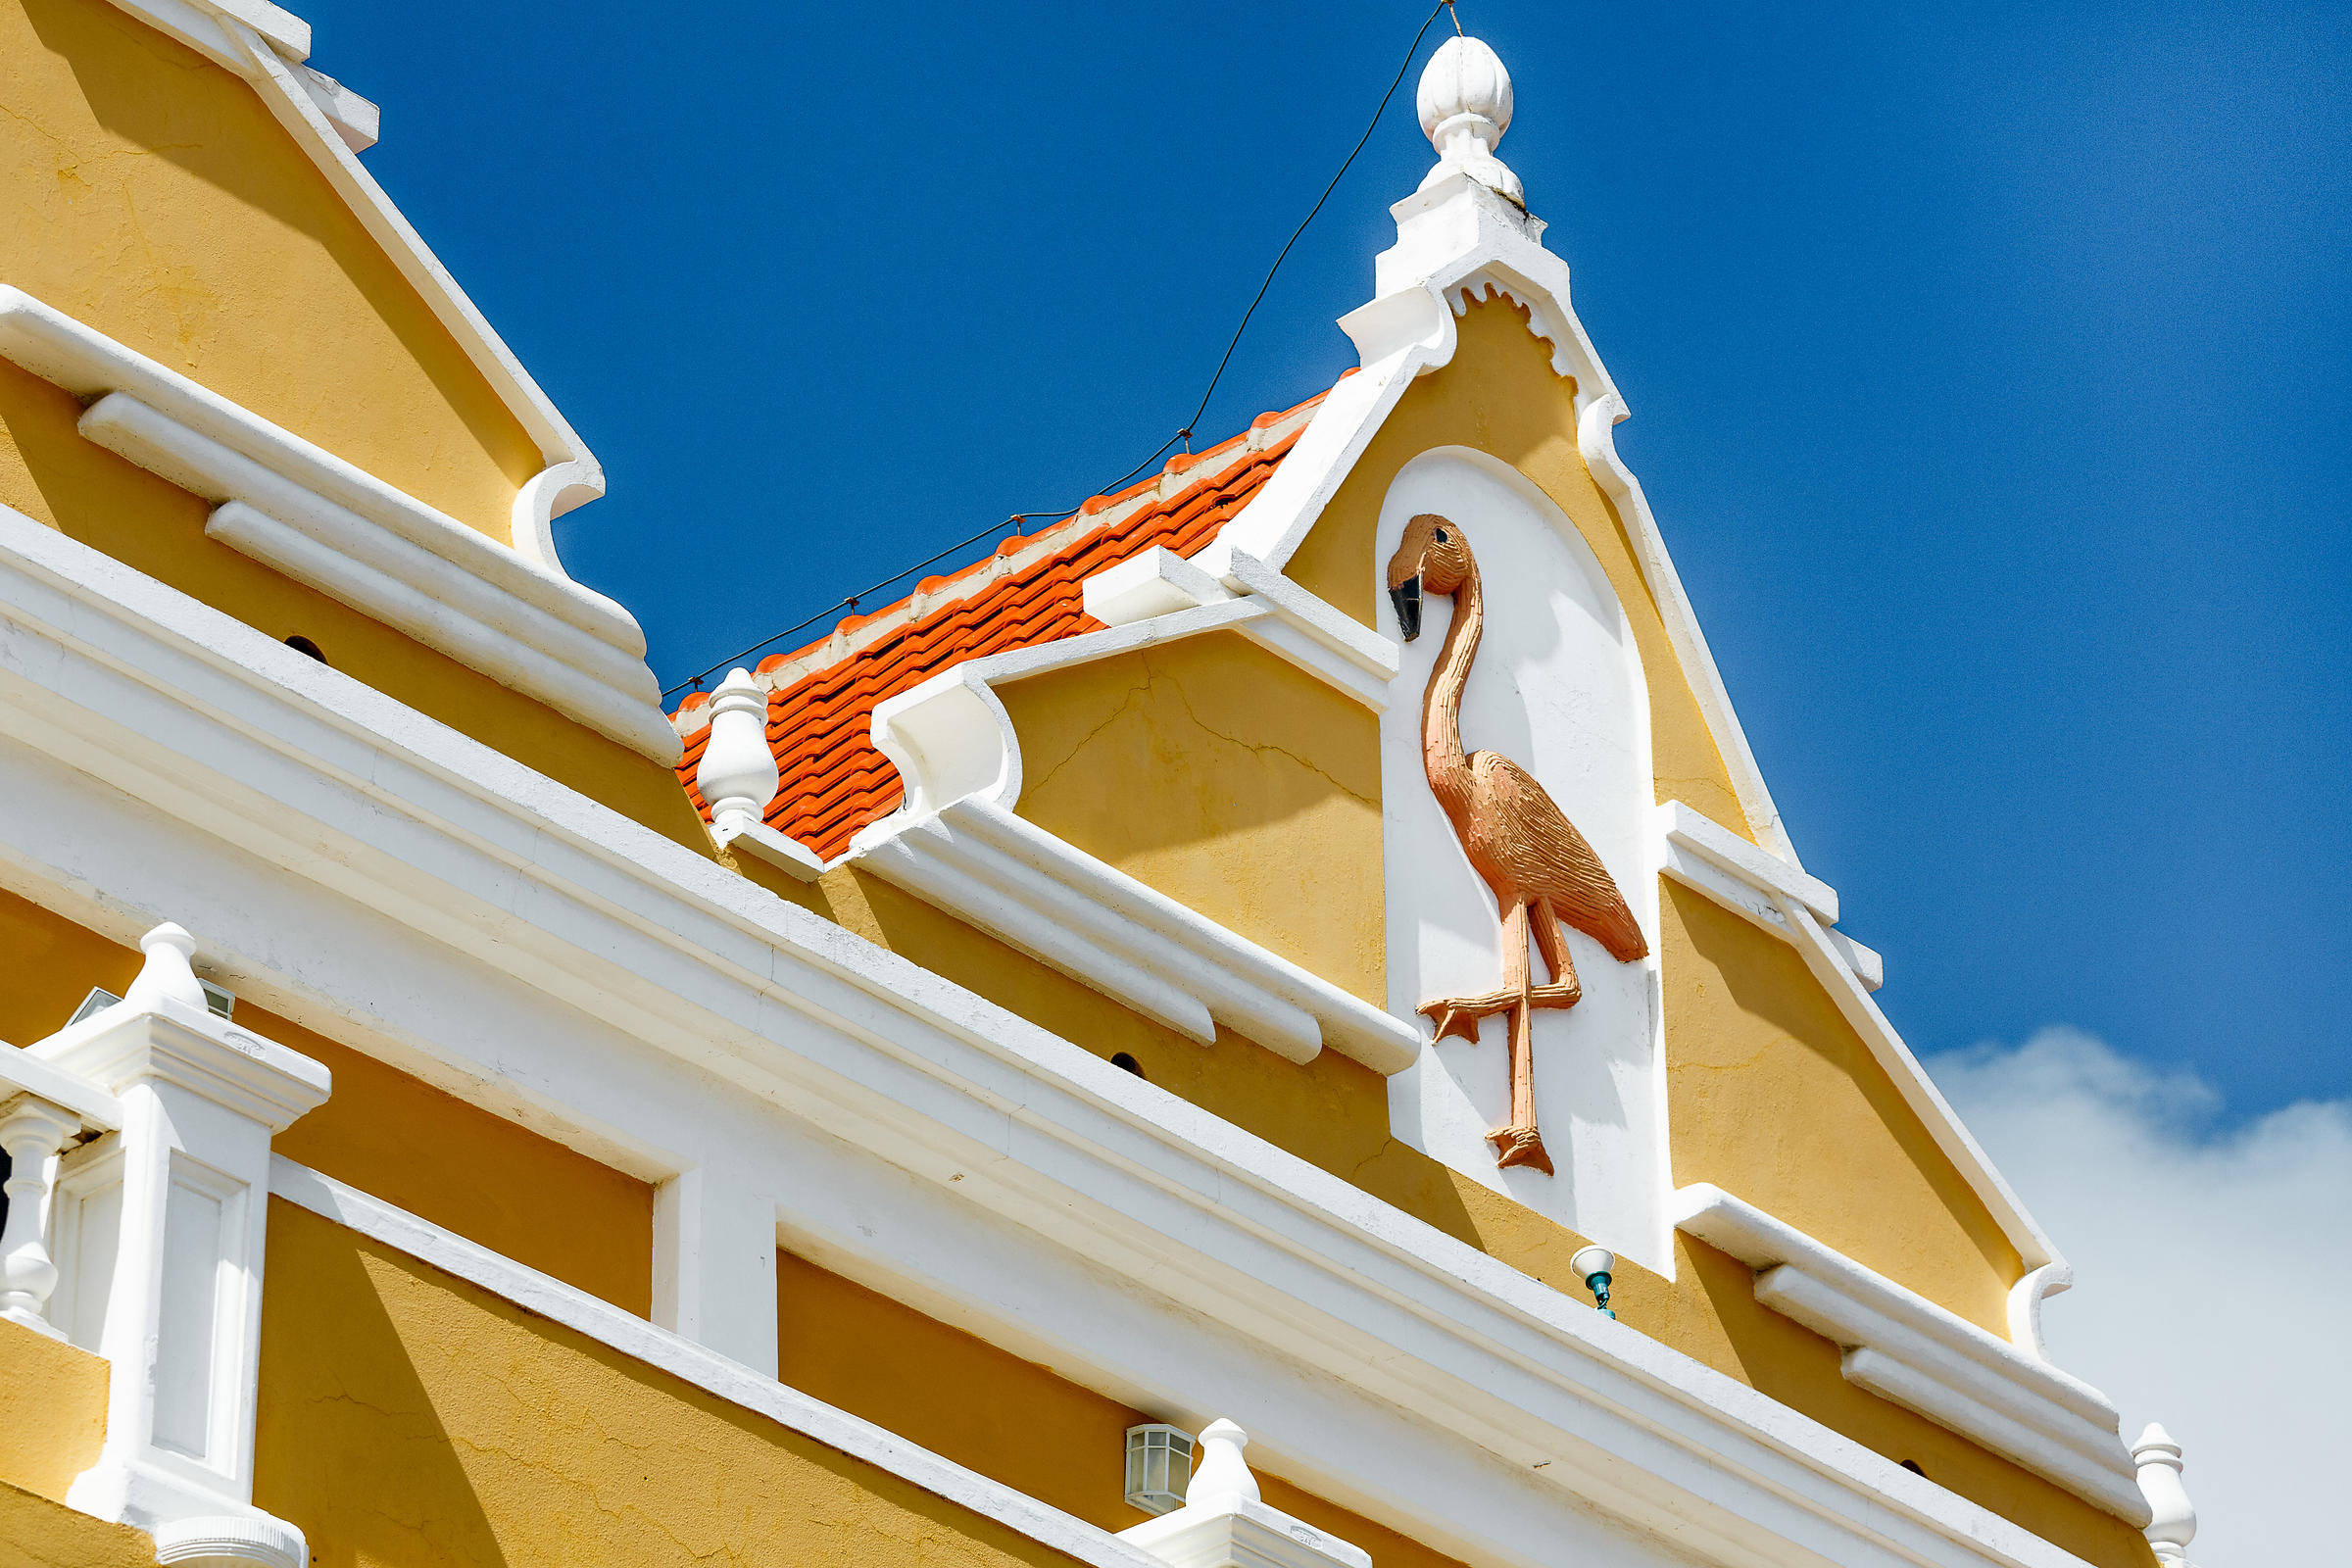 Colourful building with flamingo sculpted on the front Kralendijk, Bonaire